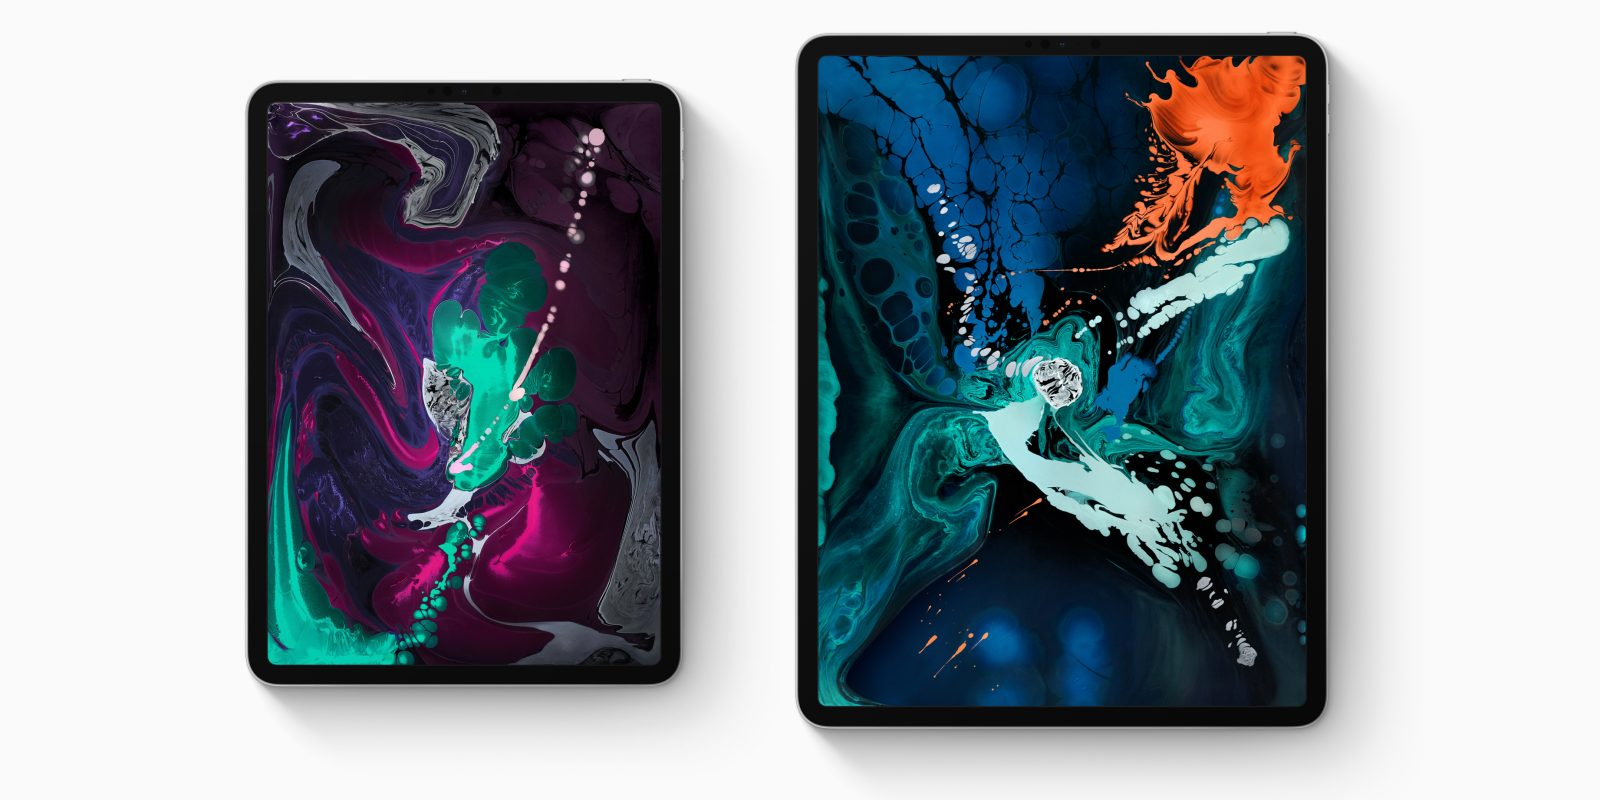 Entry-level 11- and 12.9-inch iPad Pro up to $200 off, deals from $674 shipped